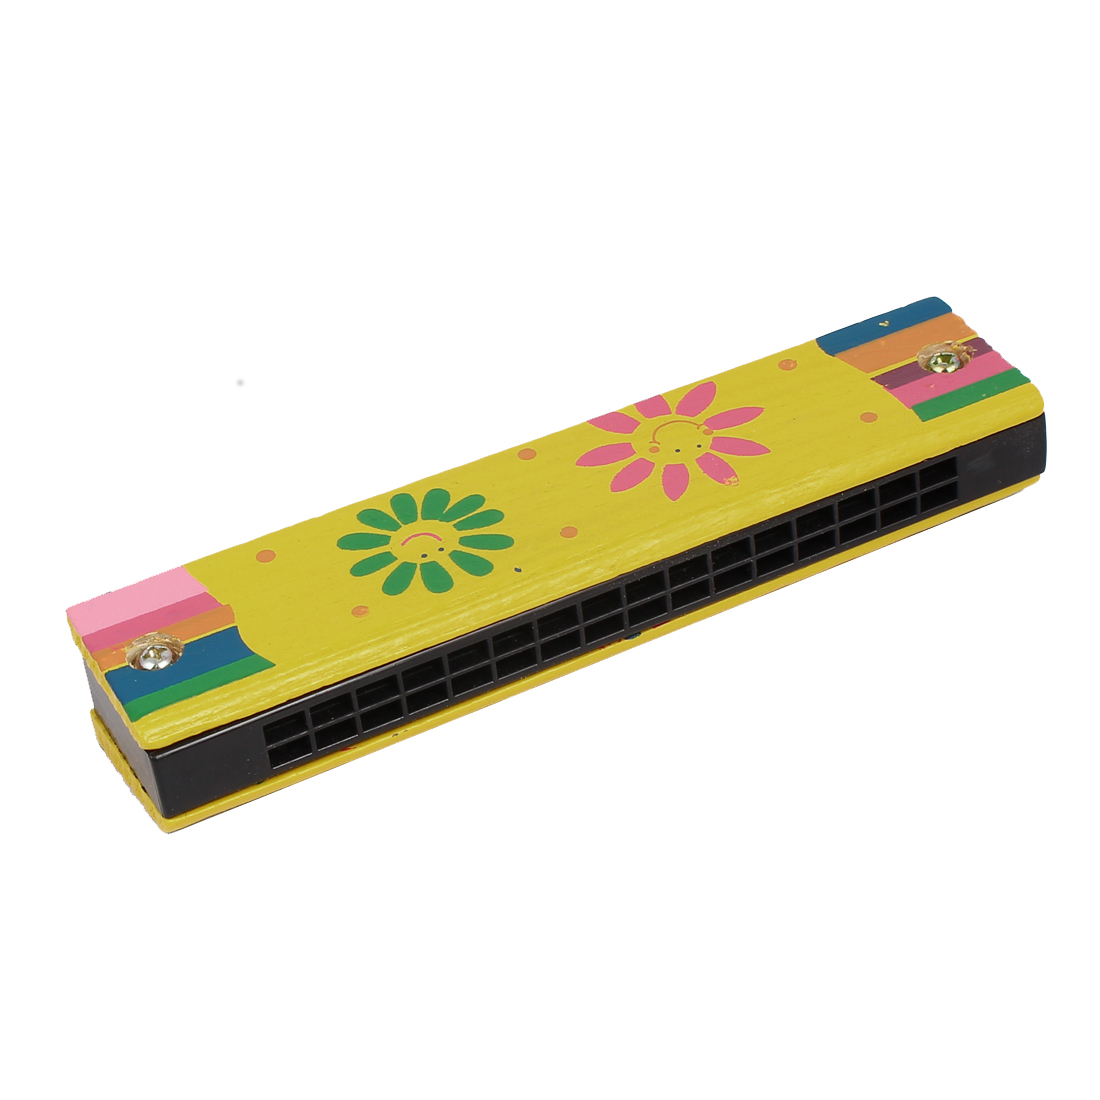 Wood Smile Face Flower Pattern Double Rows 32 Holes Harmonica Mouth Organ Yellow